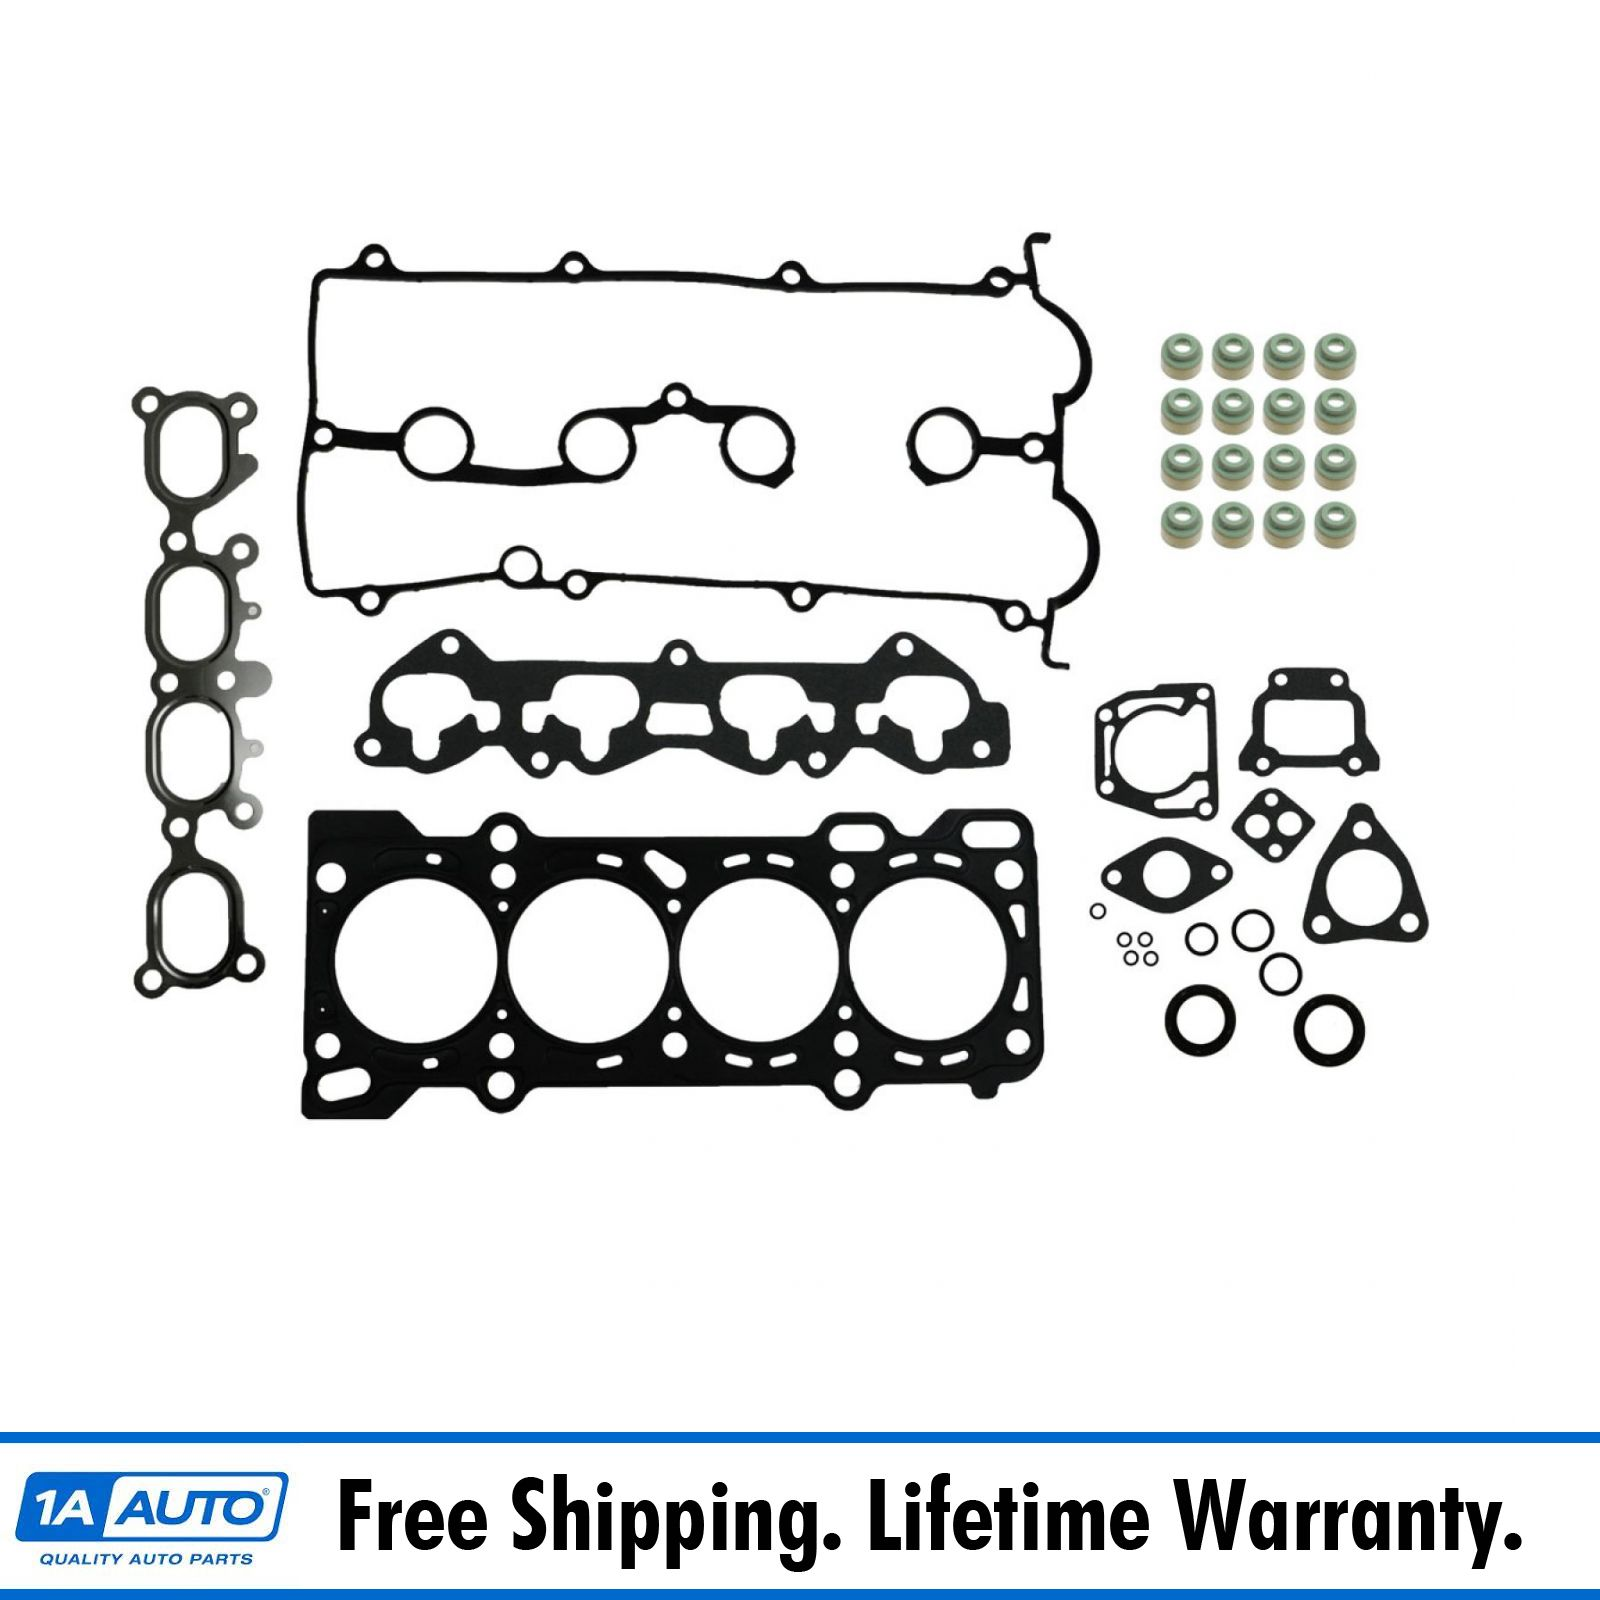 Engine Head Intake Exhaust Manifold Gasket Set Kit for Tracker Sidekick 1.6L 8V